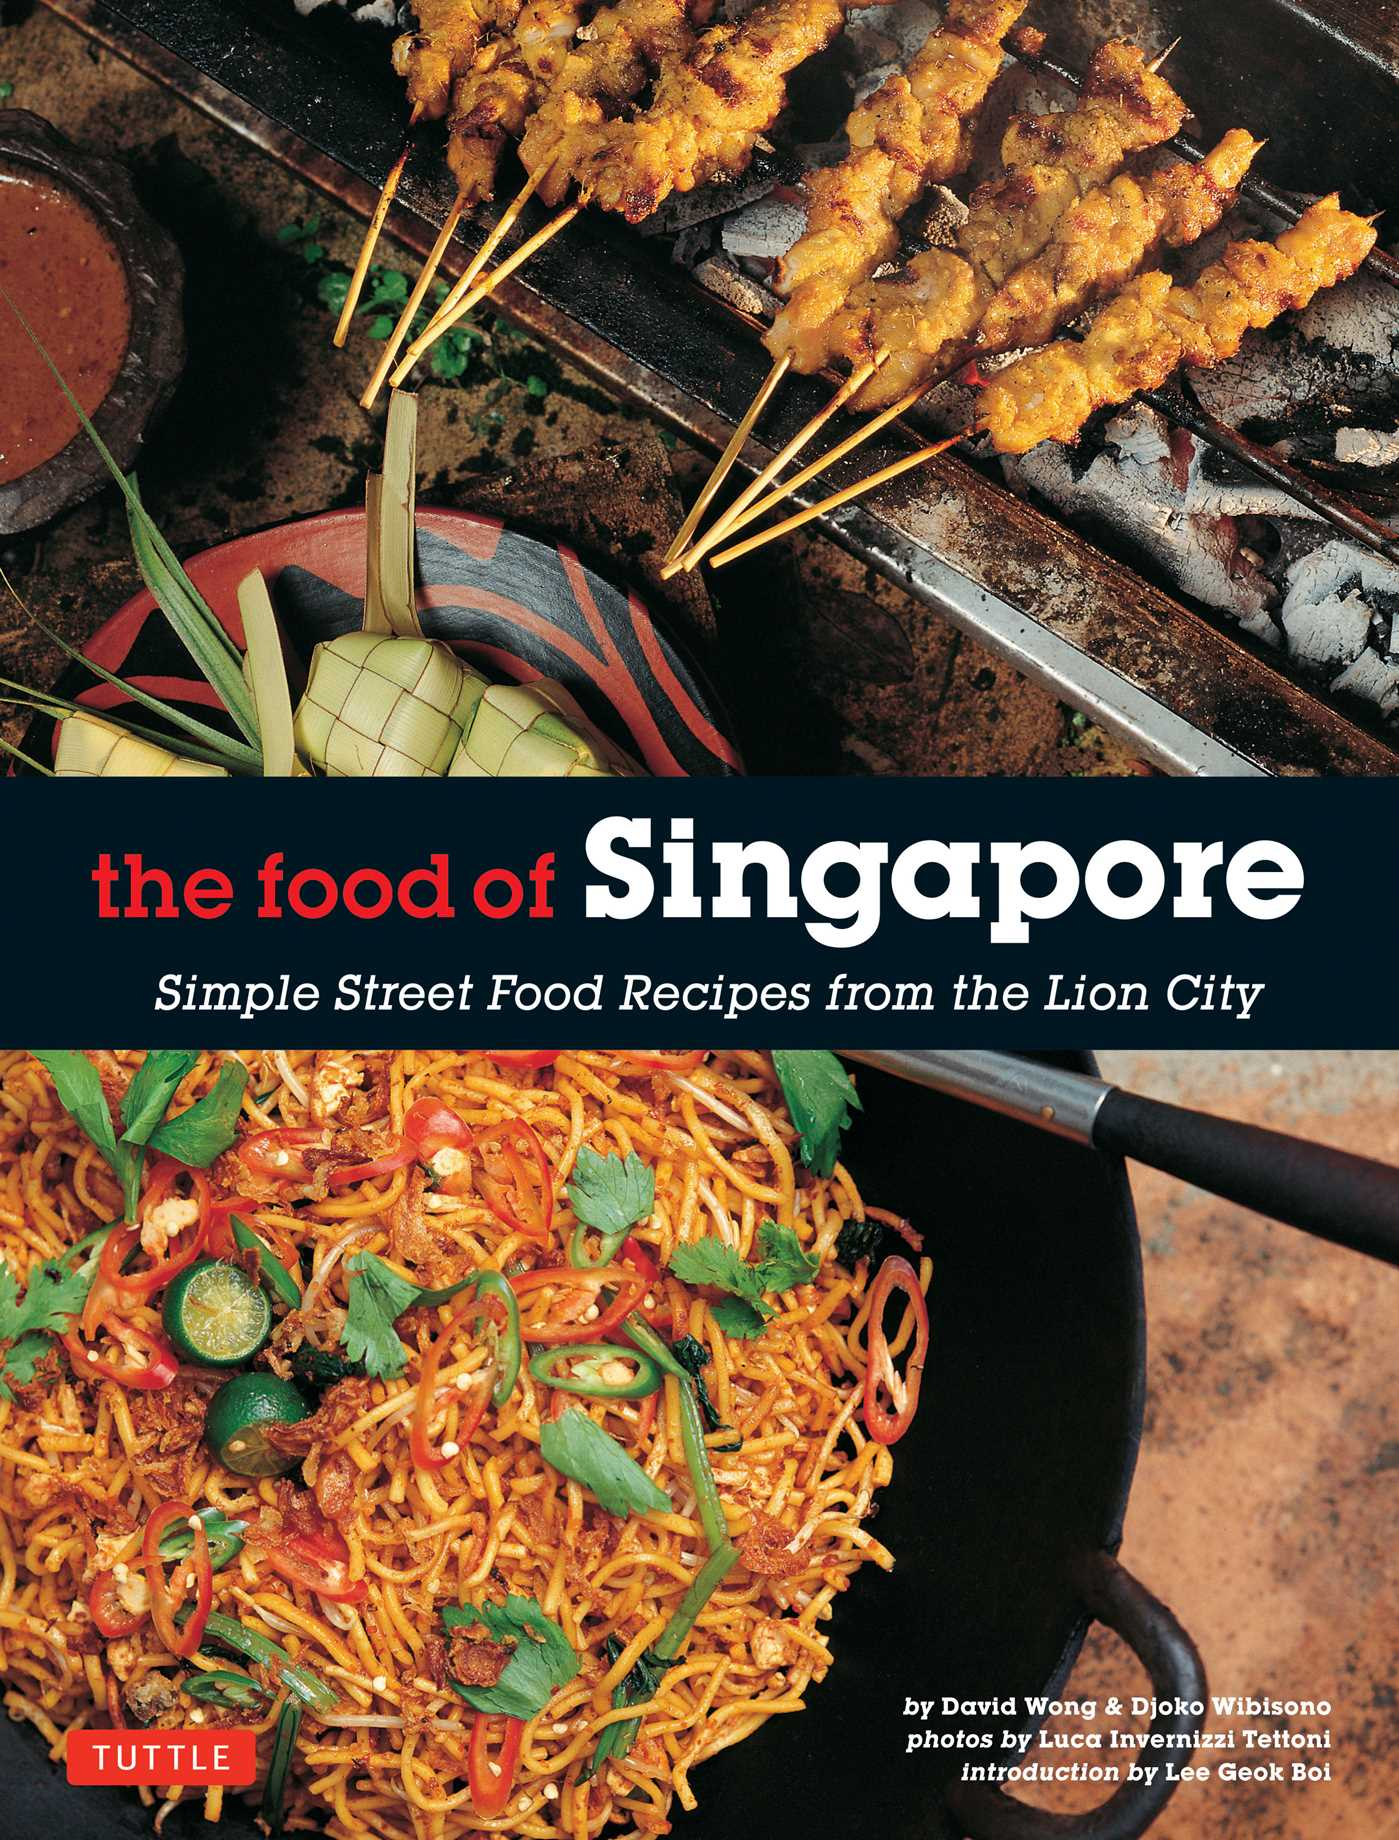 Food-of-singapore-9780804845106_hr